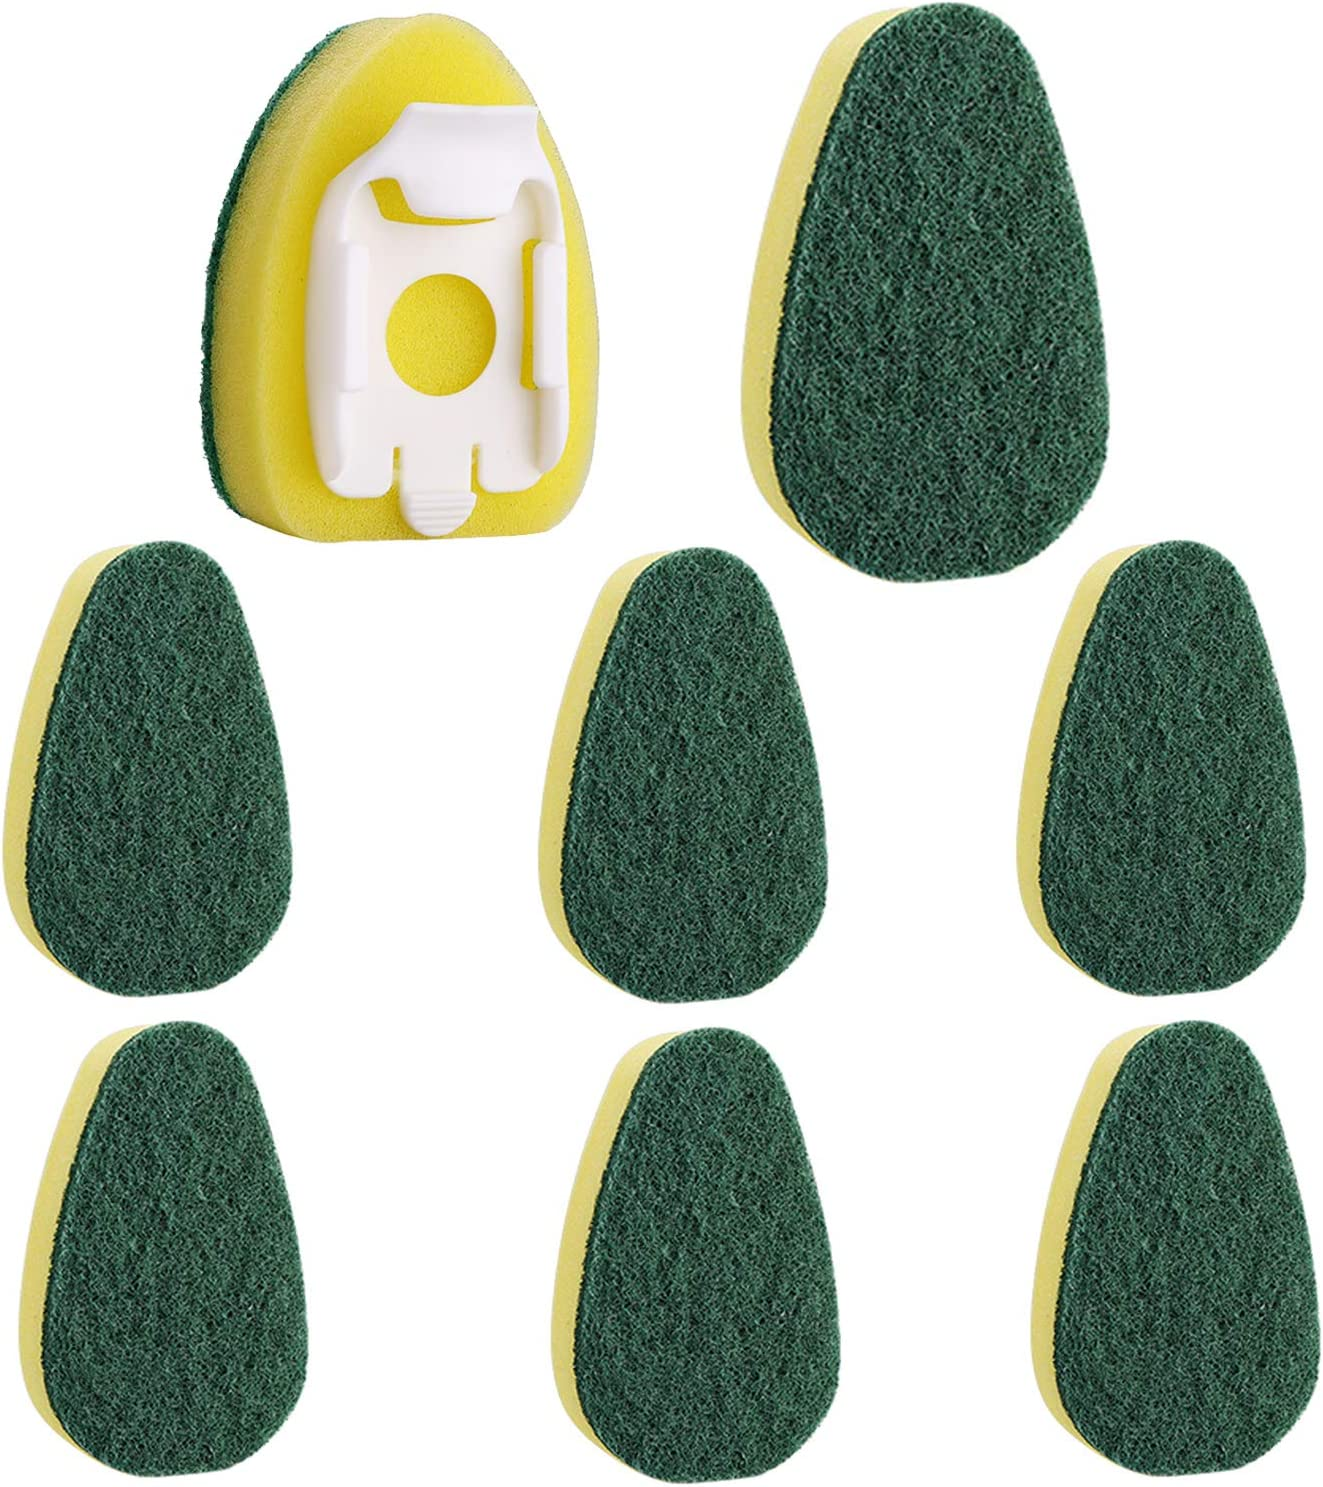 Dish Wand Refills 8Packs,Sponge Replacement Heads,Dish Wand Sponge Refill for Kitchen Cleaning